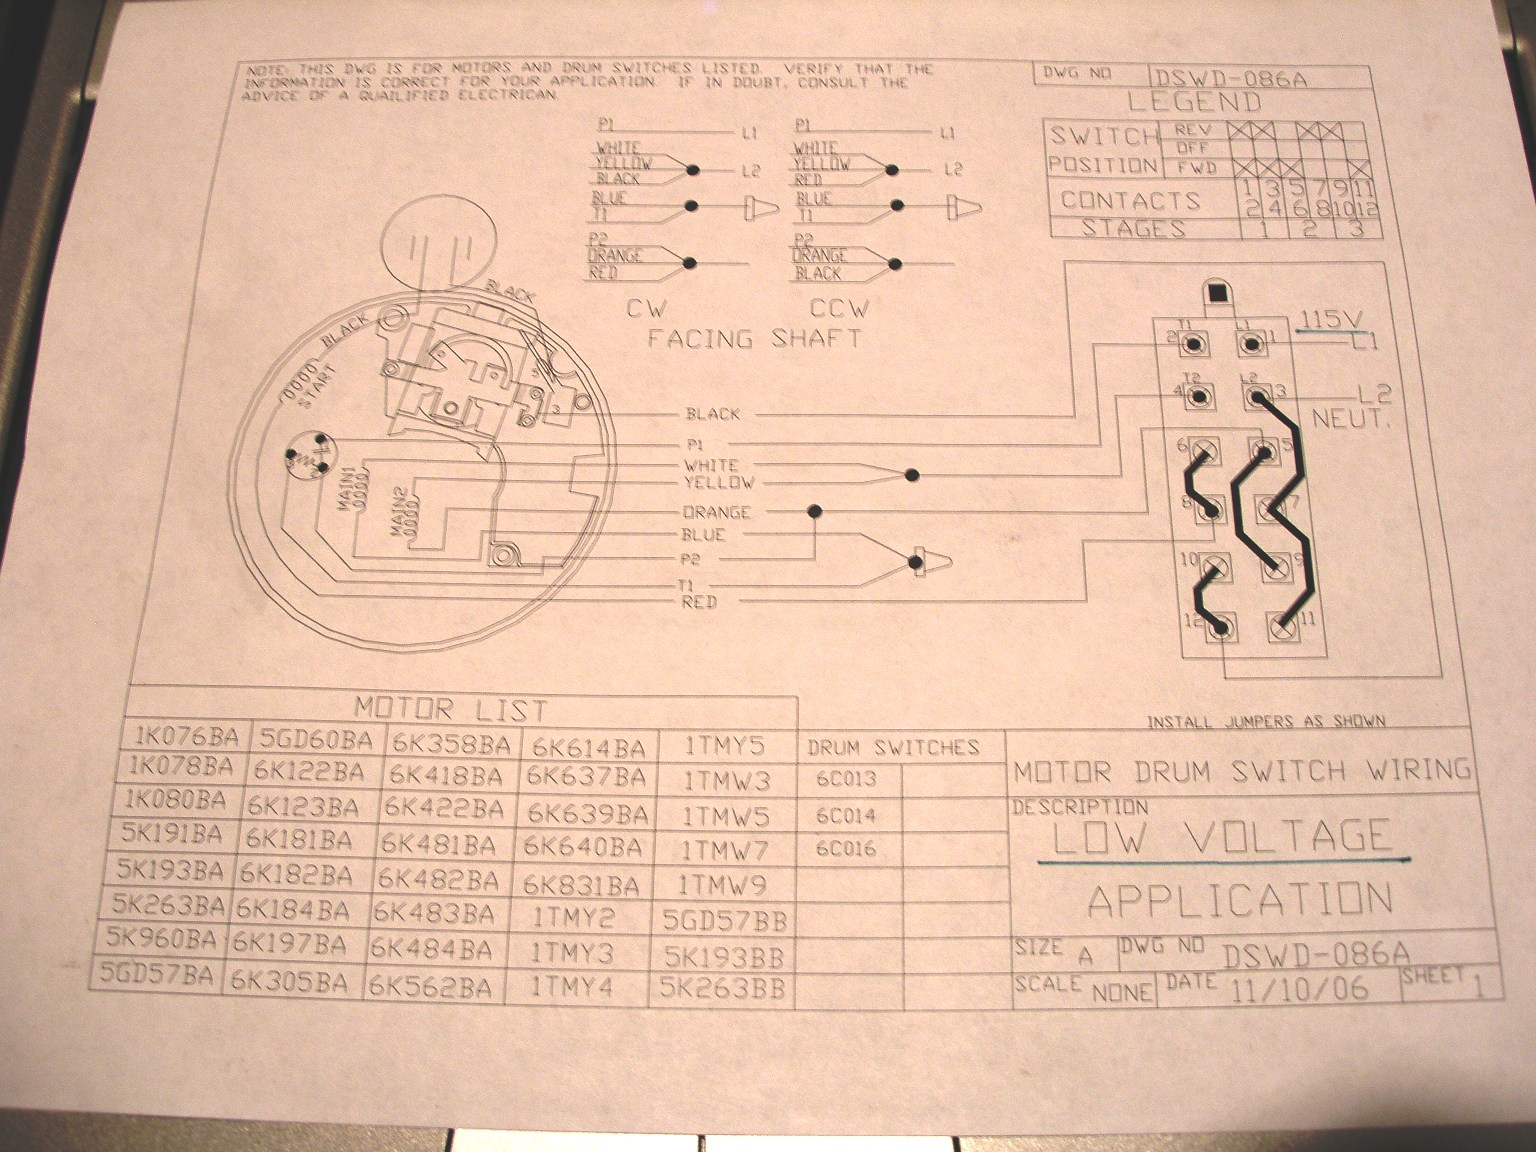 Nema 0 Starter Wiring Diagram further Dayton Gear Motor Wiring Diagram likewise C25dnd330 Wiring Diagram besides Dayton 1 5 Hp Motor Ph Wiring Diagram besides 5x847 Wireing Diagram. on grainger motor wiring diagrams